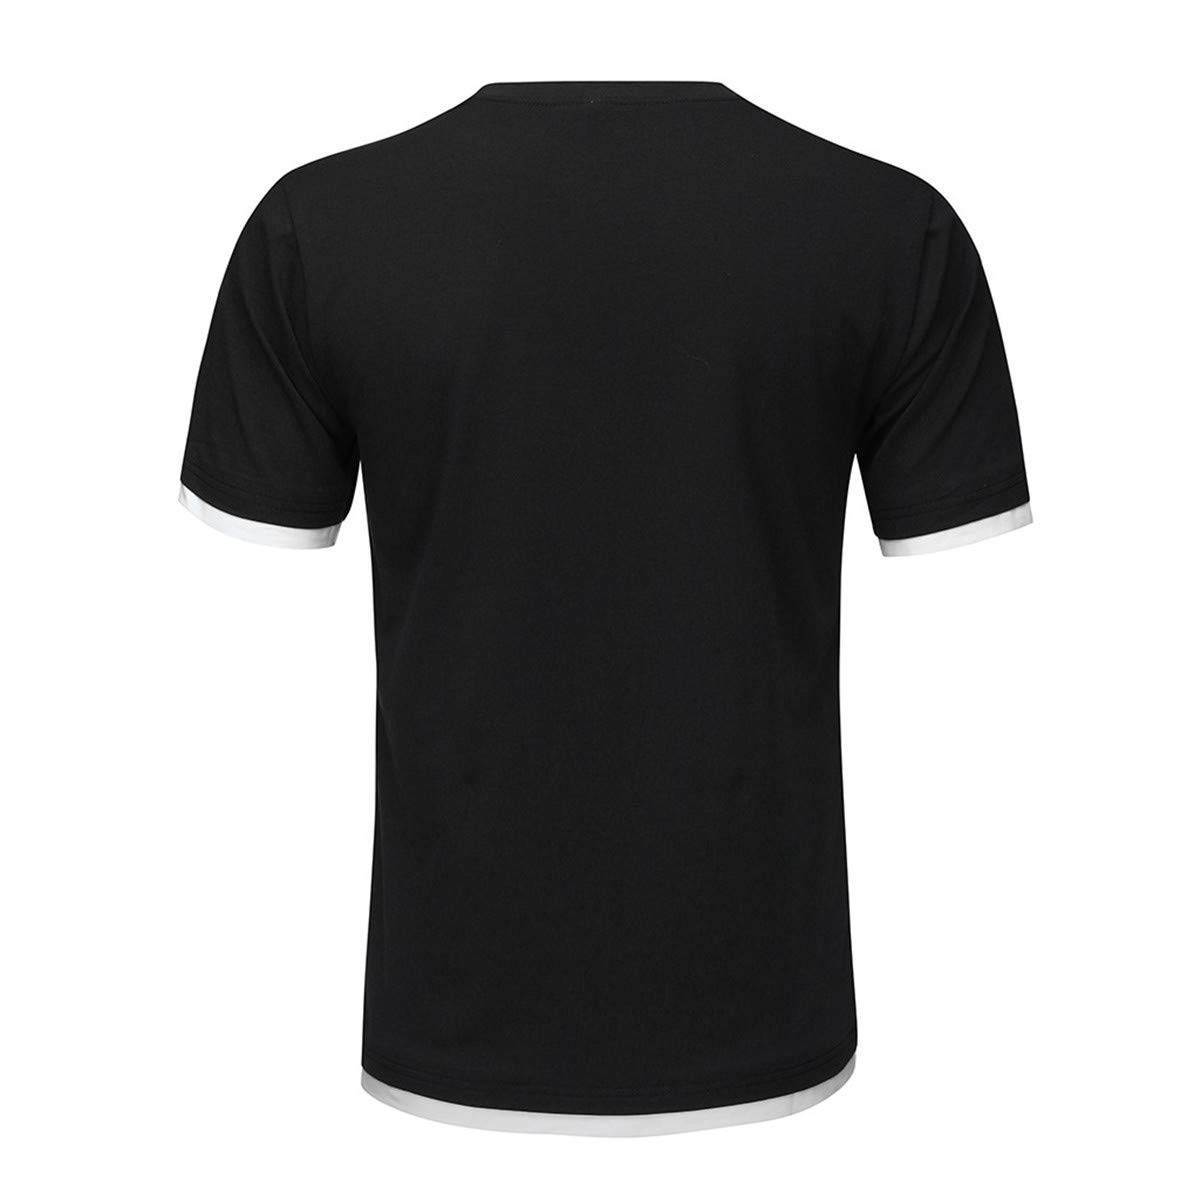 Thenxin Mens Casual T Shirt Crewneck Short-Sleeve Solid Color Standard-fit Tee